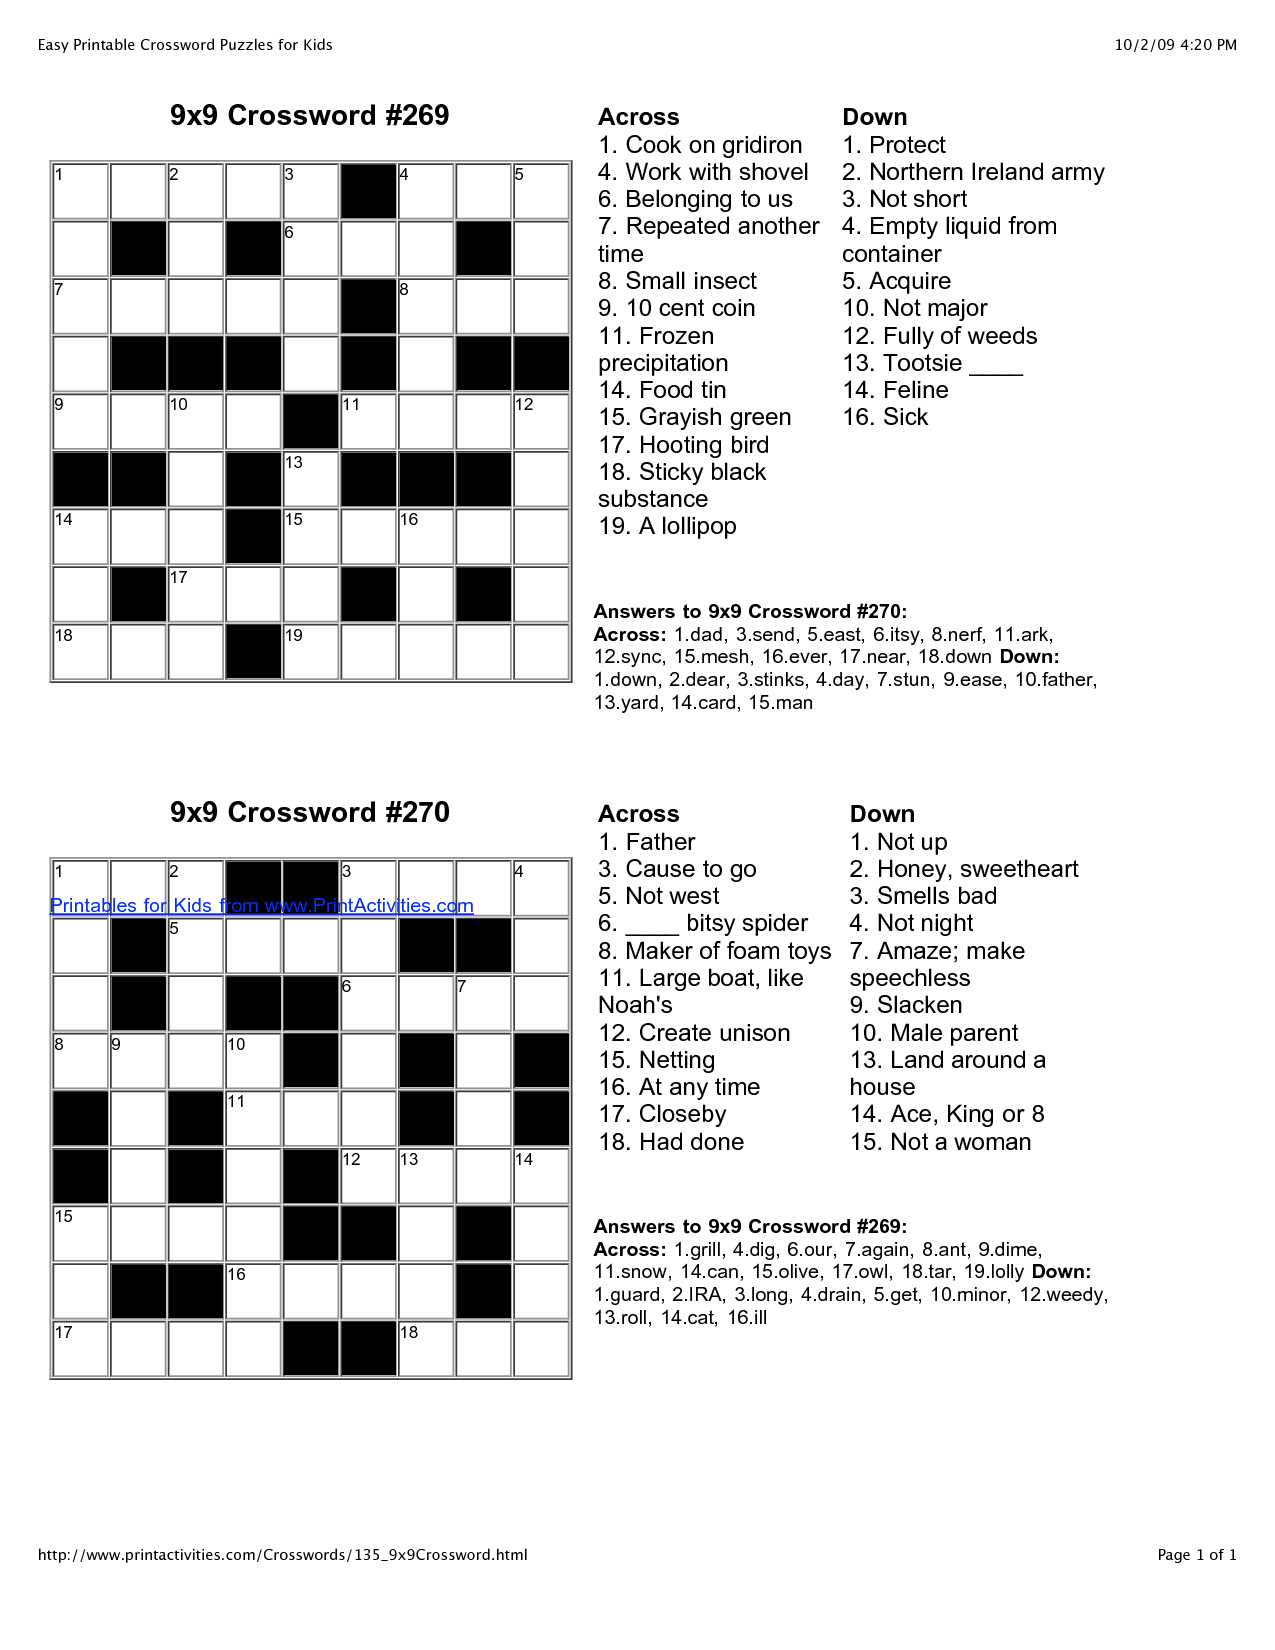 Easy Crossword Puzzles | I'm Going To Be An Slp! | Kids Crossword - Beginner Crossword Puzzles Printable